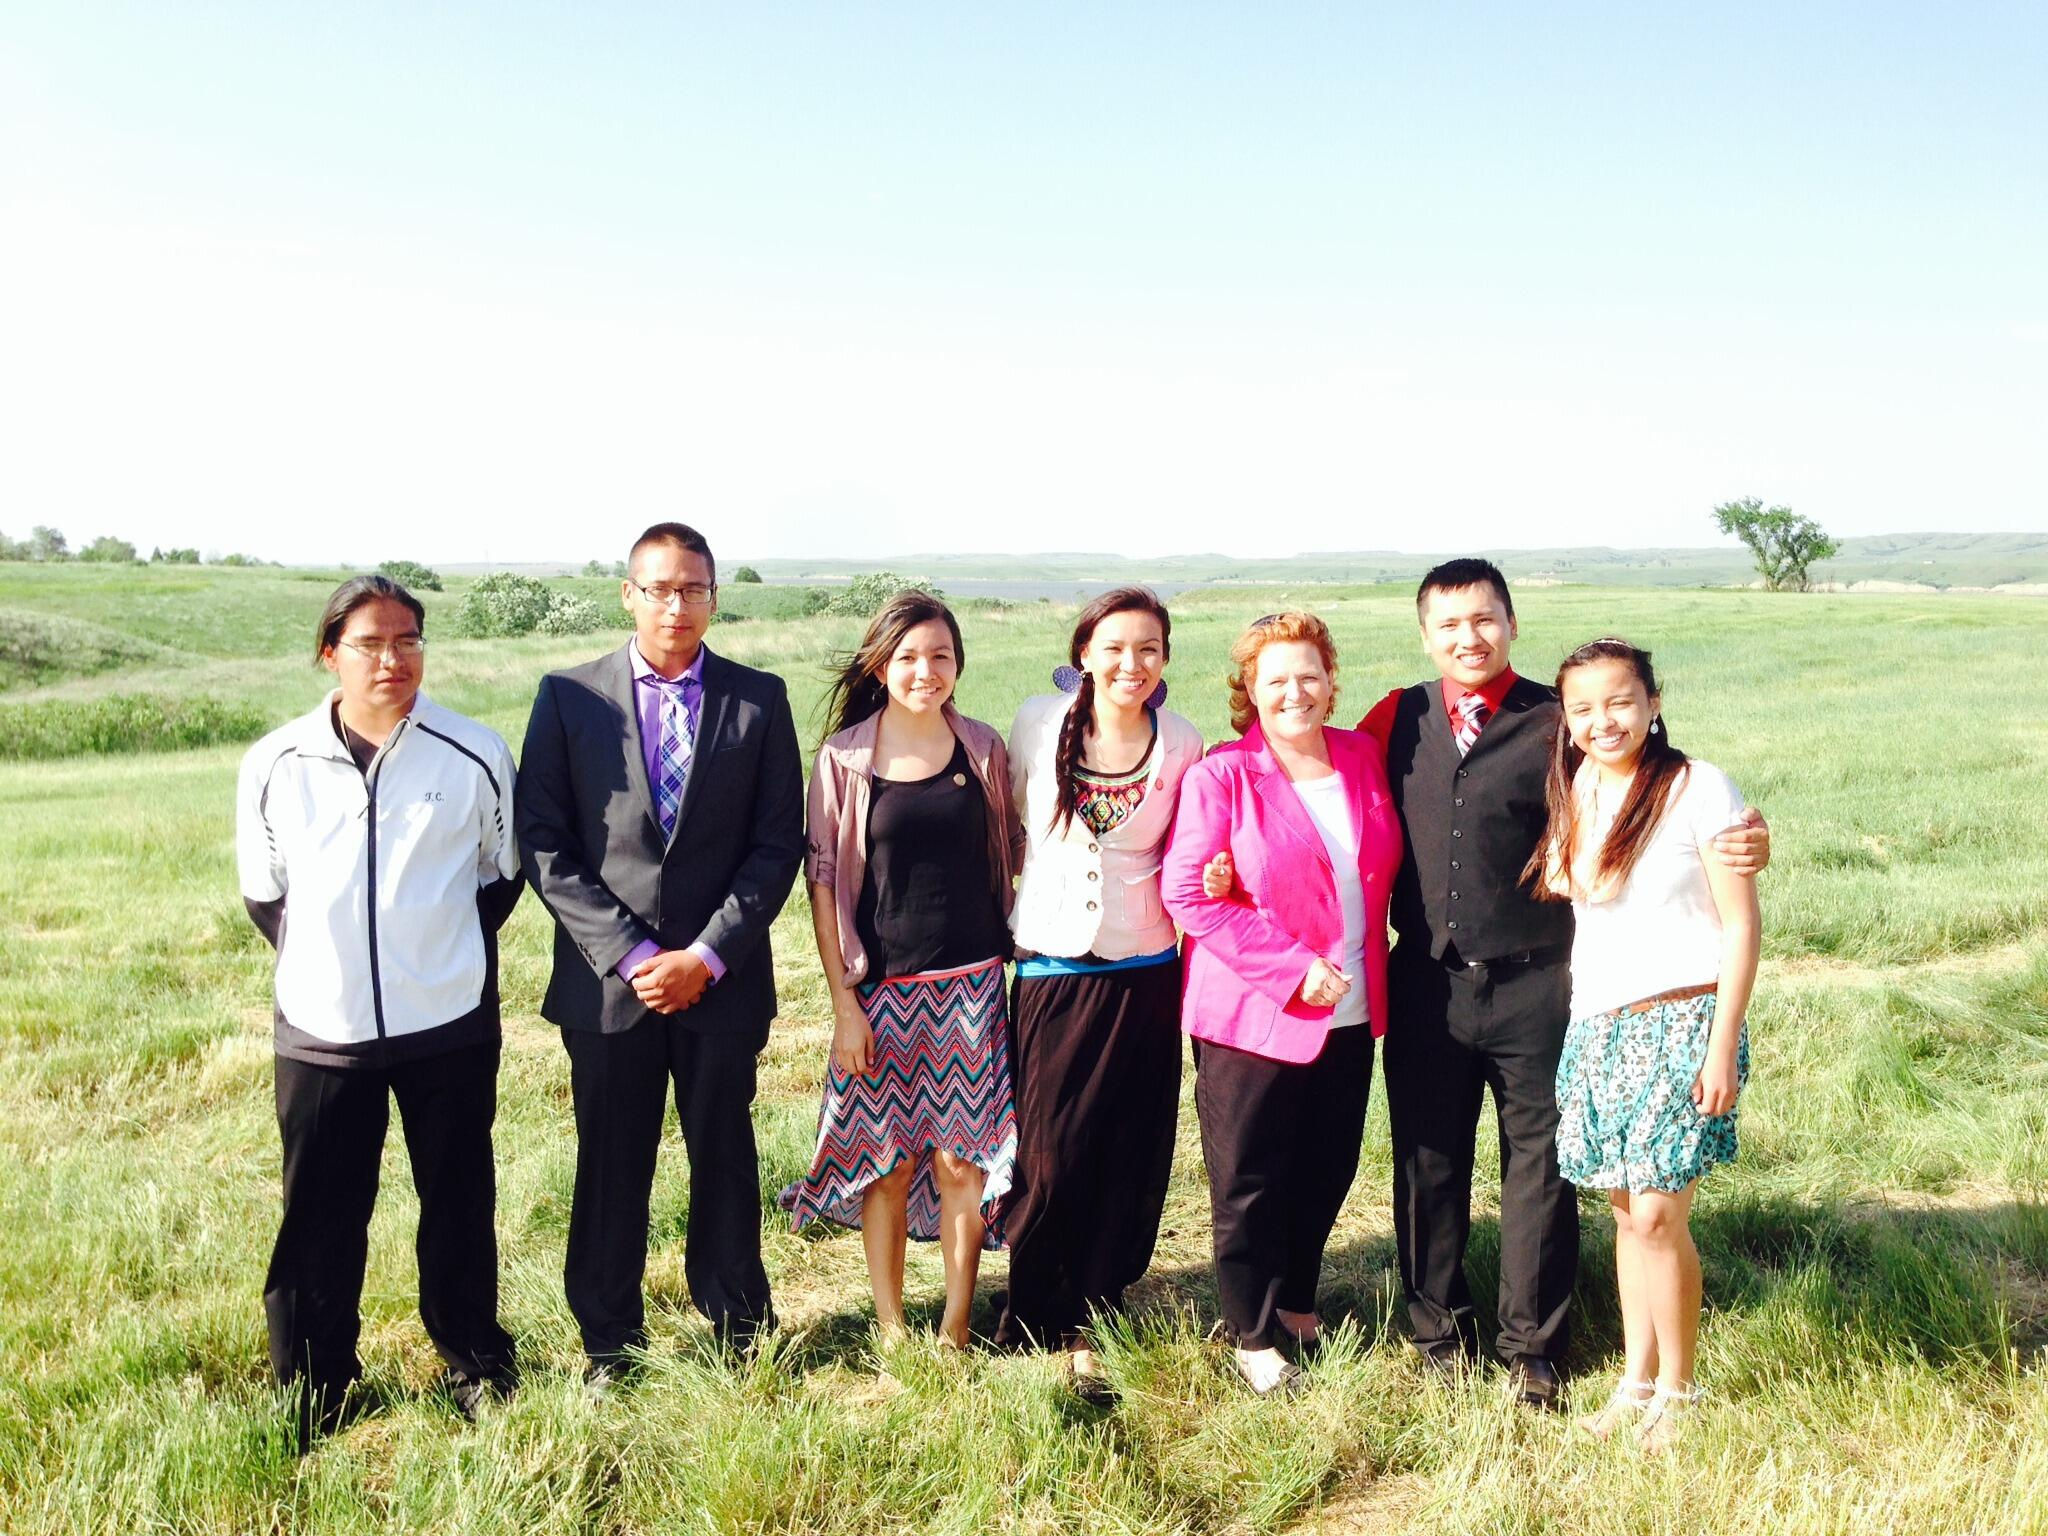 Youth share spotlight as House subcommittee takes up Native bills